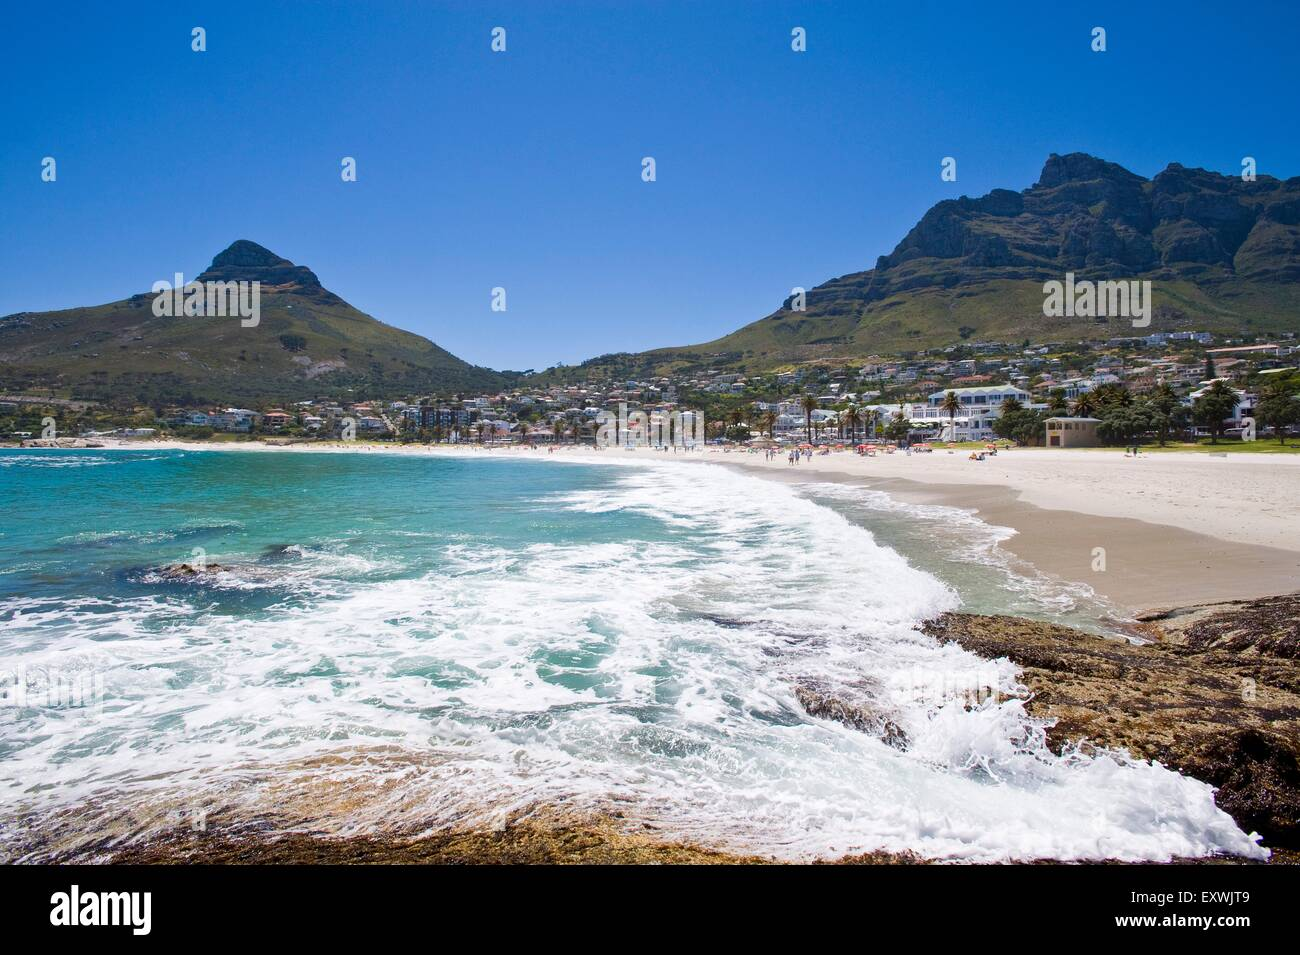 Beach at Camps Bay, Cape Town, South Africa Stock Photo